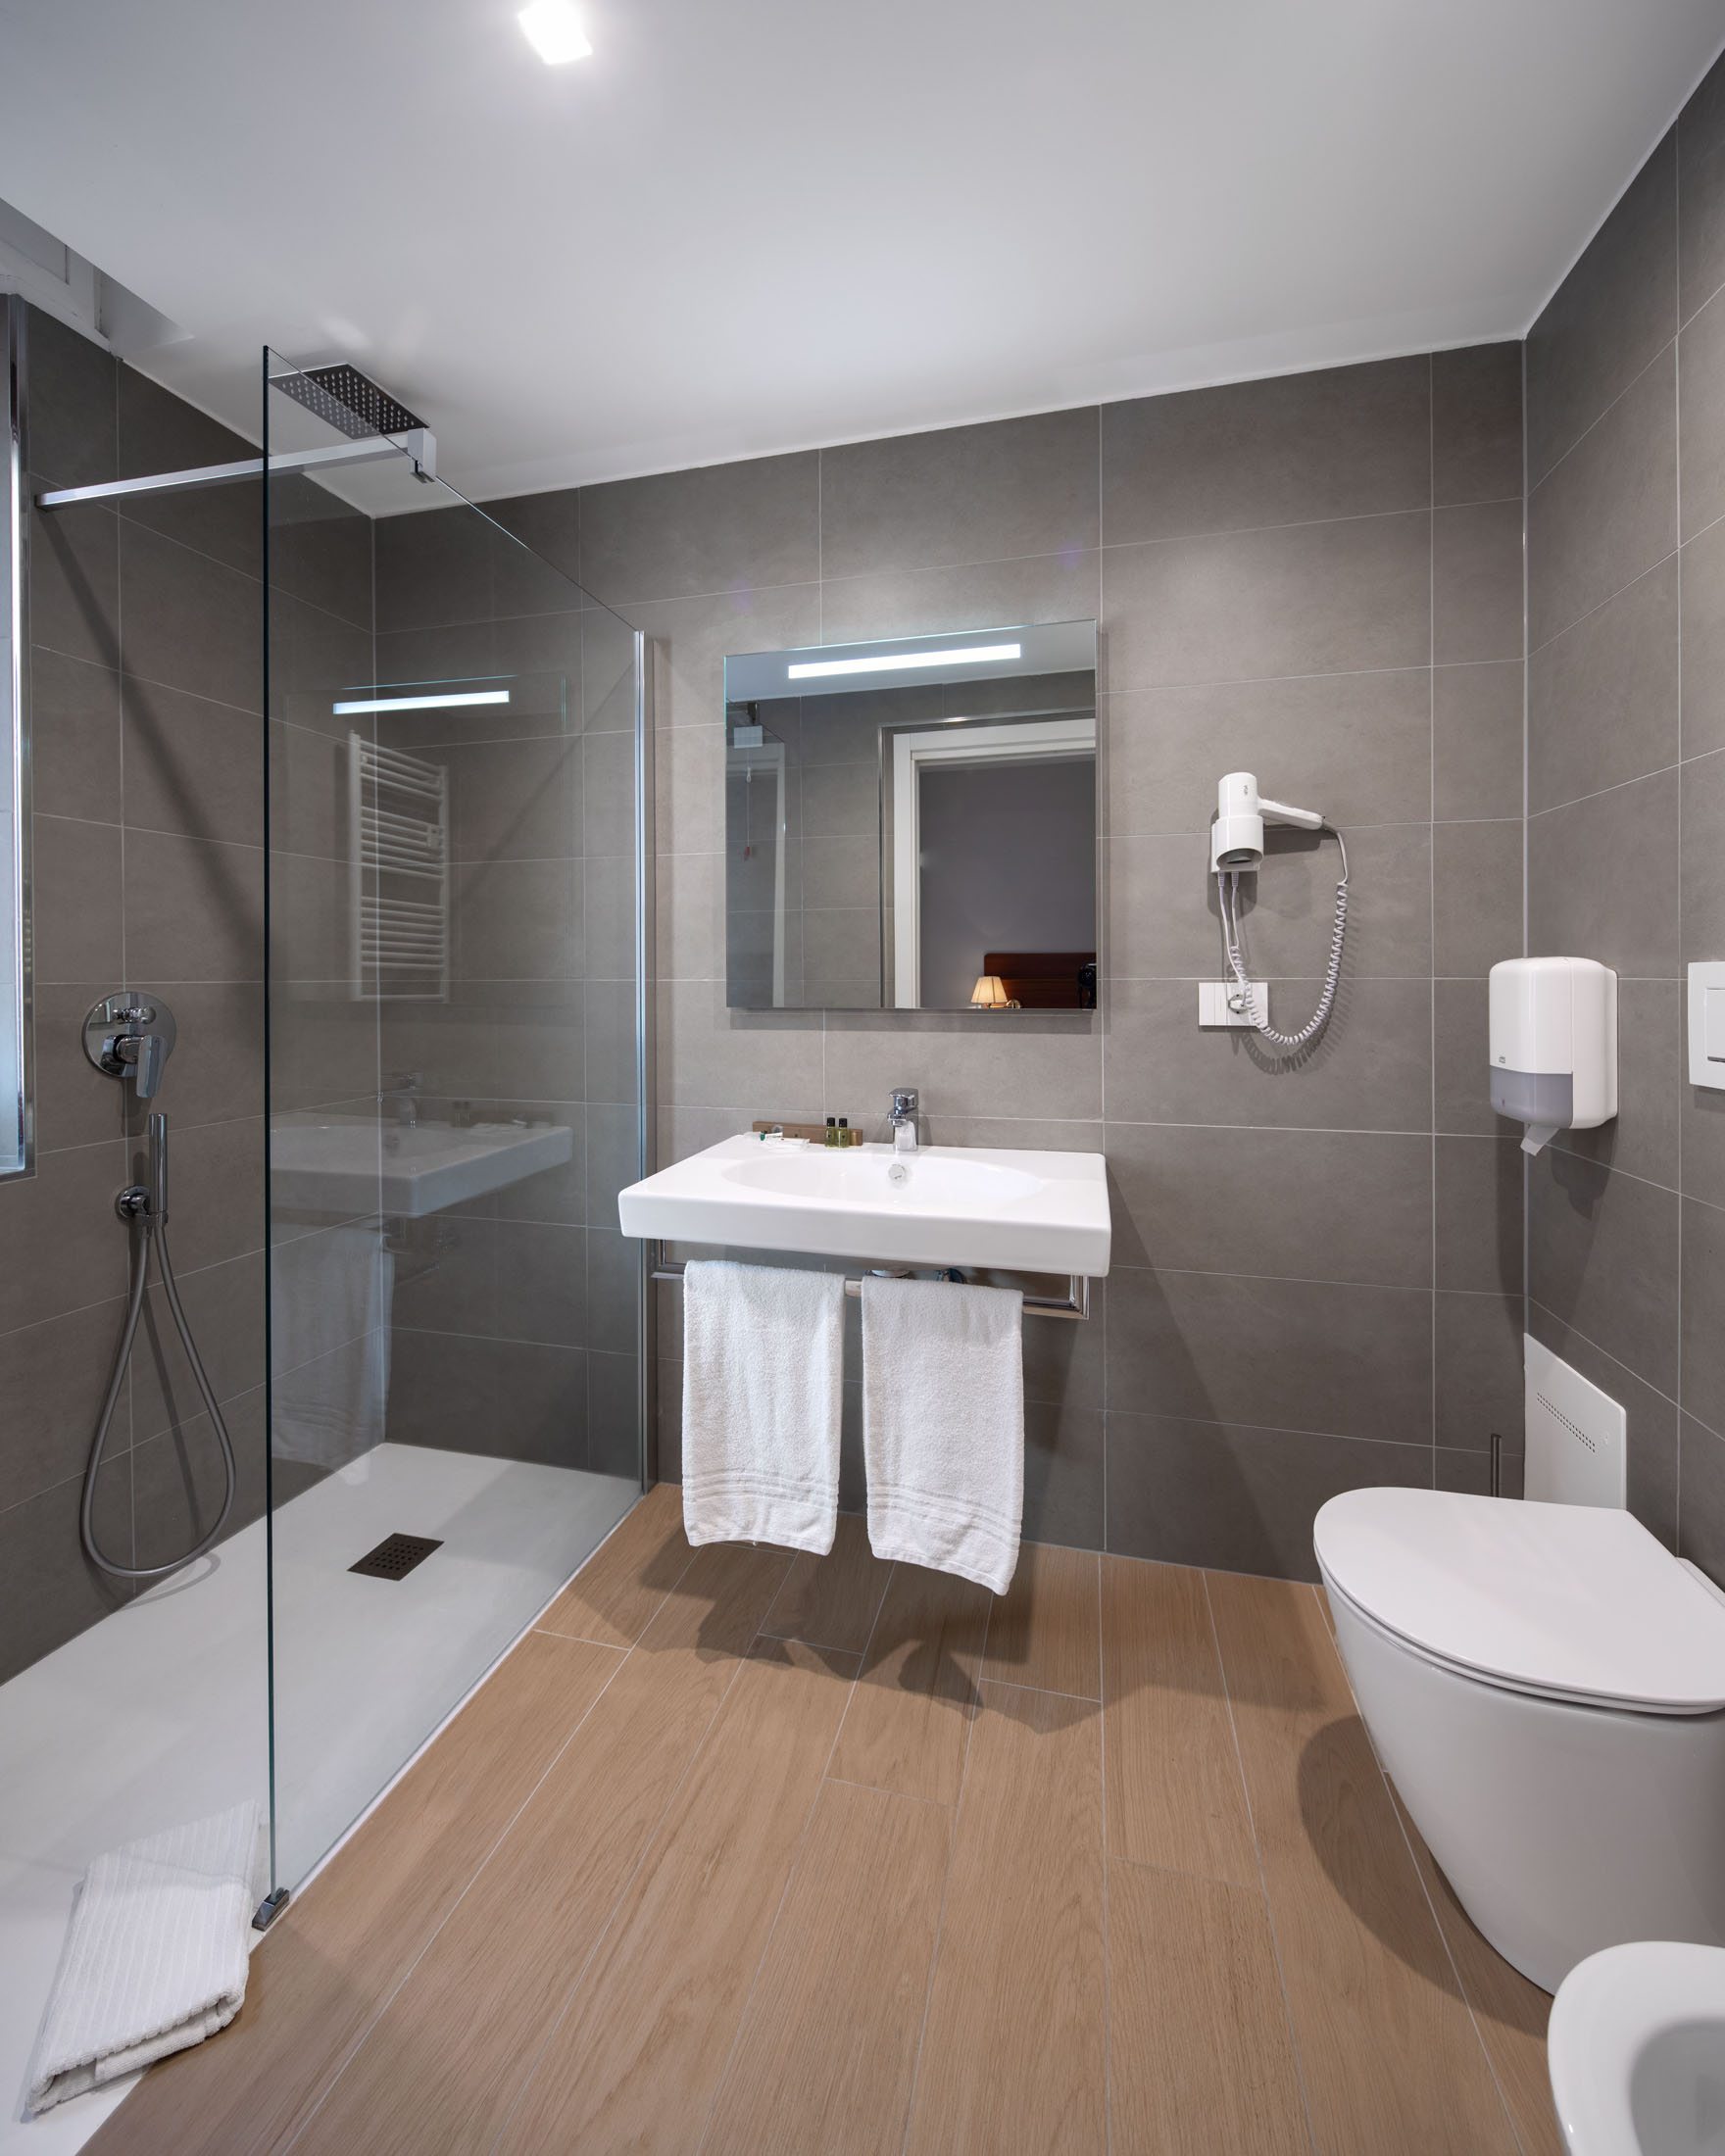 https://www.in-lombardia.it/sites/default/files/accomodation/gallery/105682/37623/excelsior_pavia_20.jpg